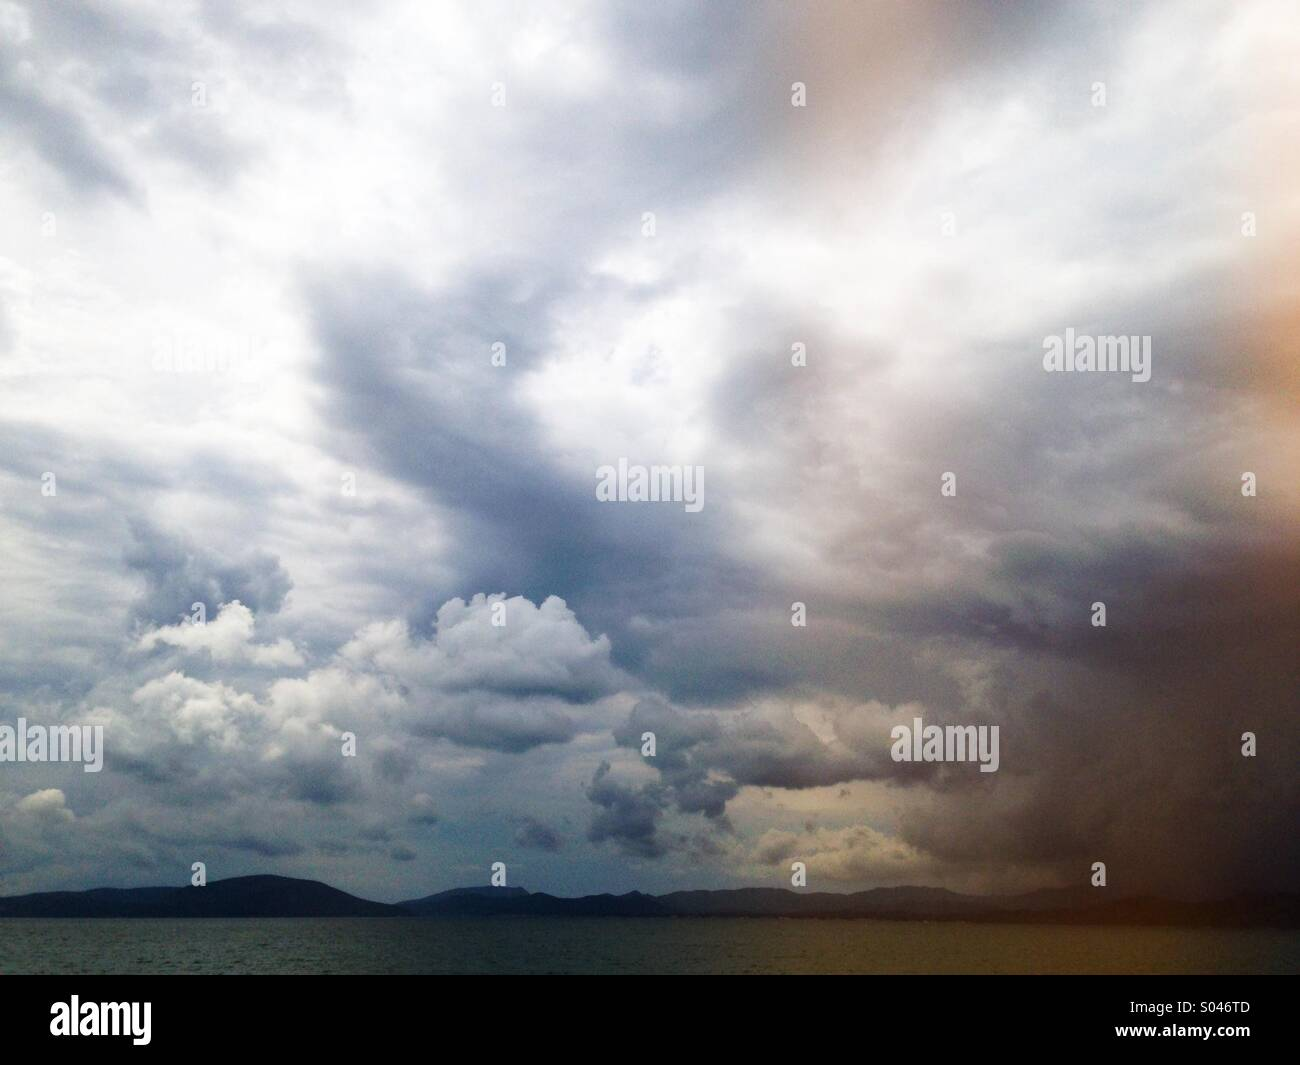 Storm clouds on the horizon - Stock Image